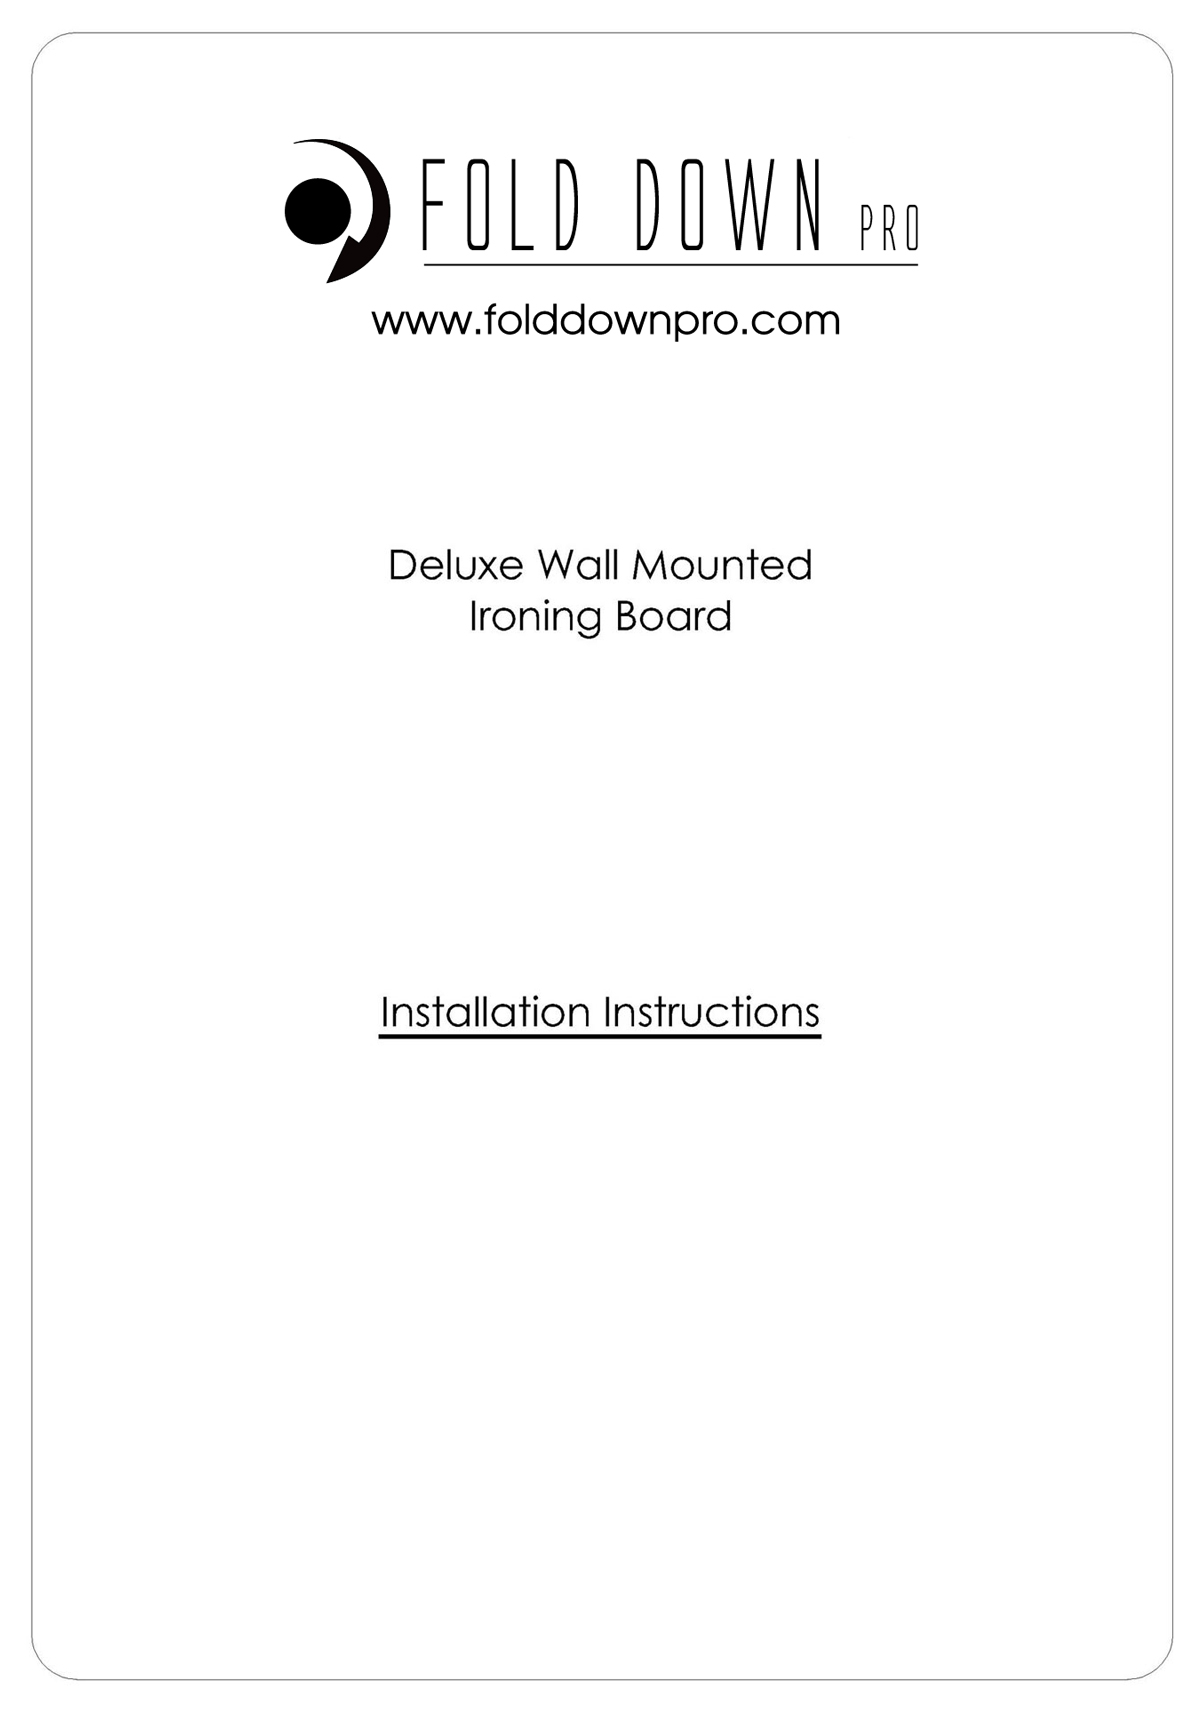 Deluxe Wall Mounted Ironing Board Instructions Page 0